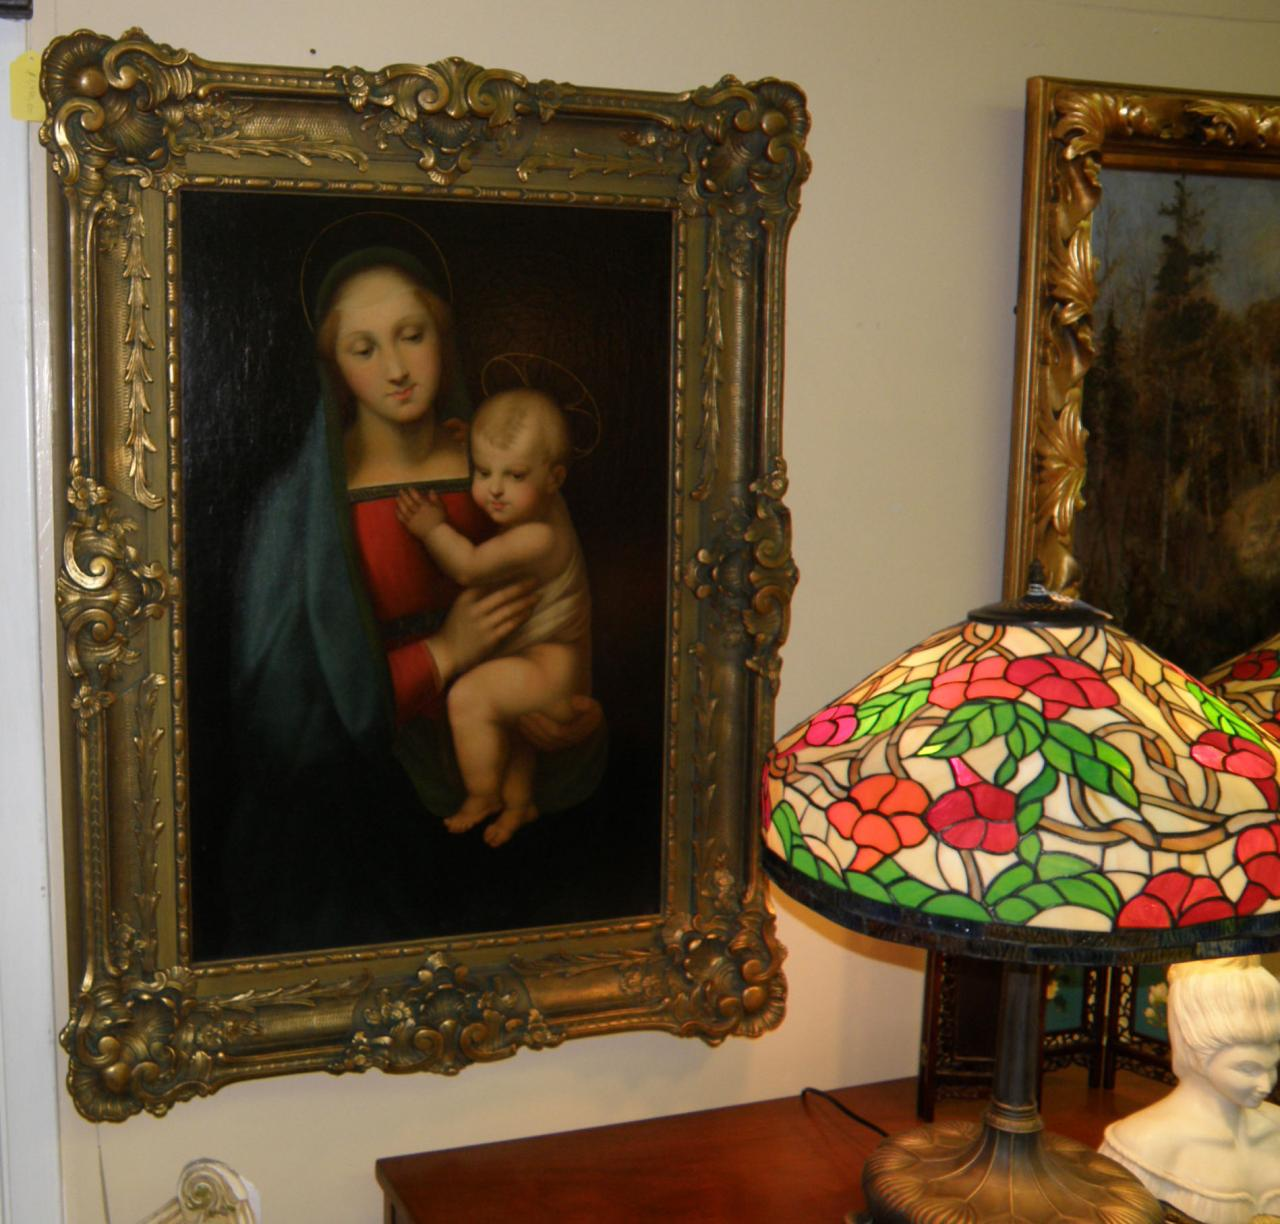 Antique Galleries Of St Petersburg Tour Our Shop We Are An Antiques Gallery In St Petersburg